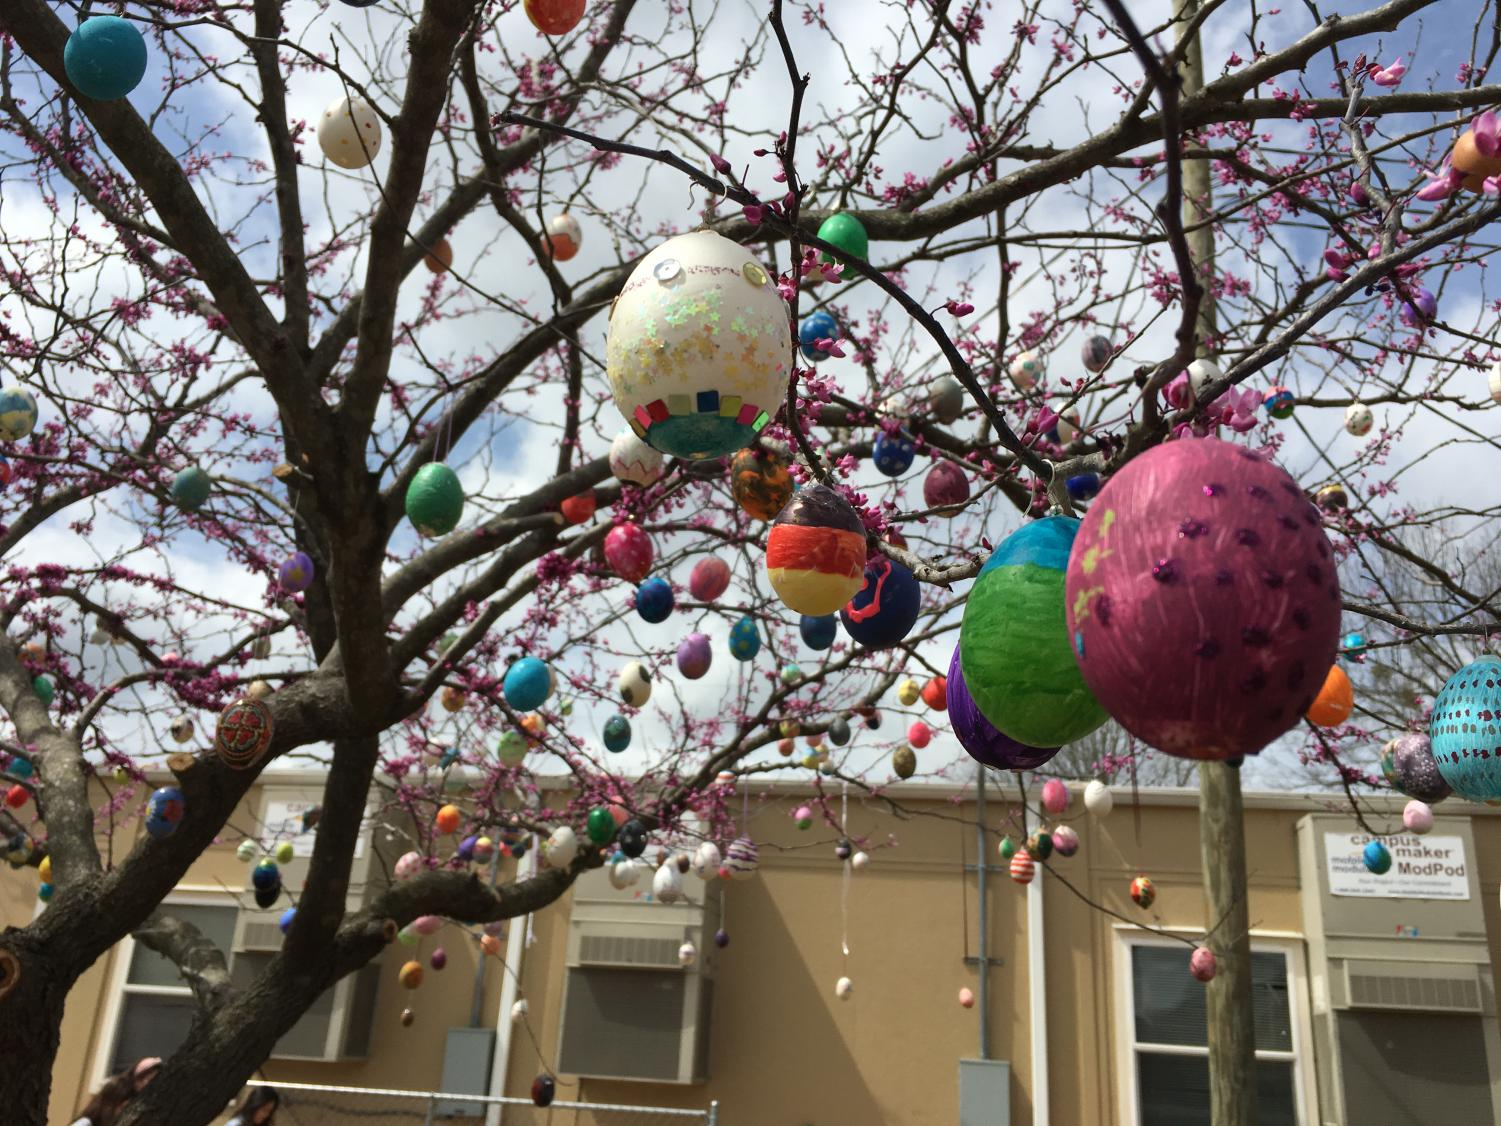 Despite the cold and windy weather, South's German Club kids set up their Tree of Life between the World Language Mod Pod and West Hall.